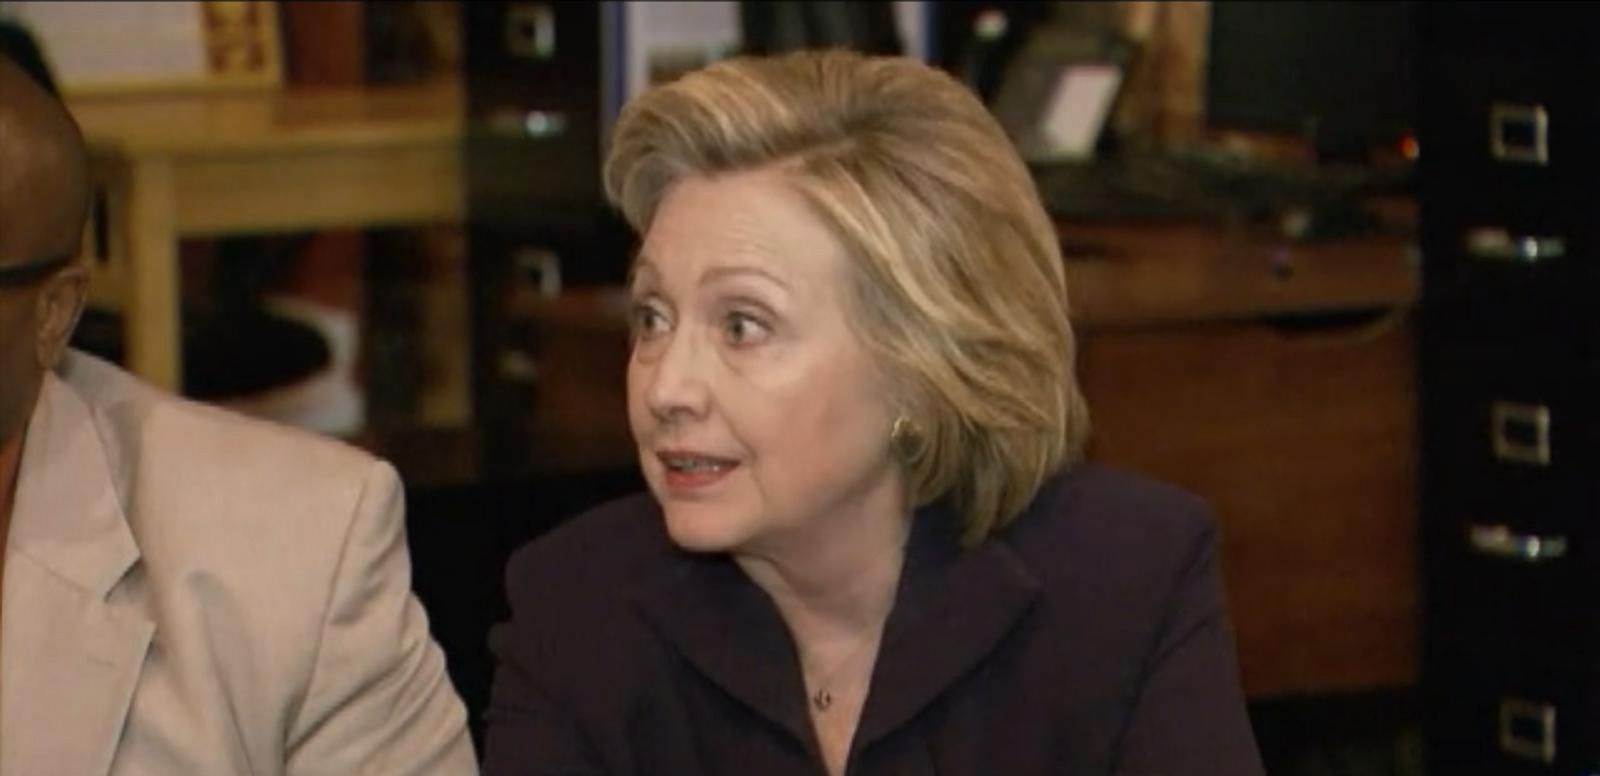 VIDEO: Hillary Clinton Looks to Expand Lead in Indiana